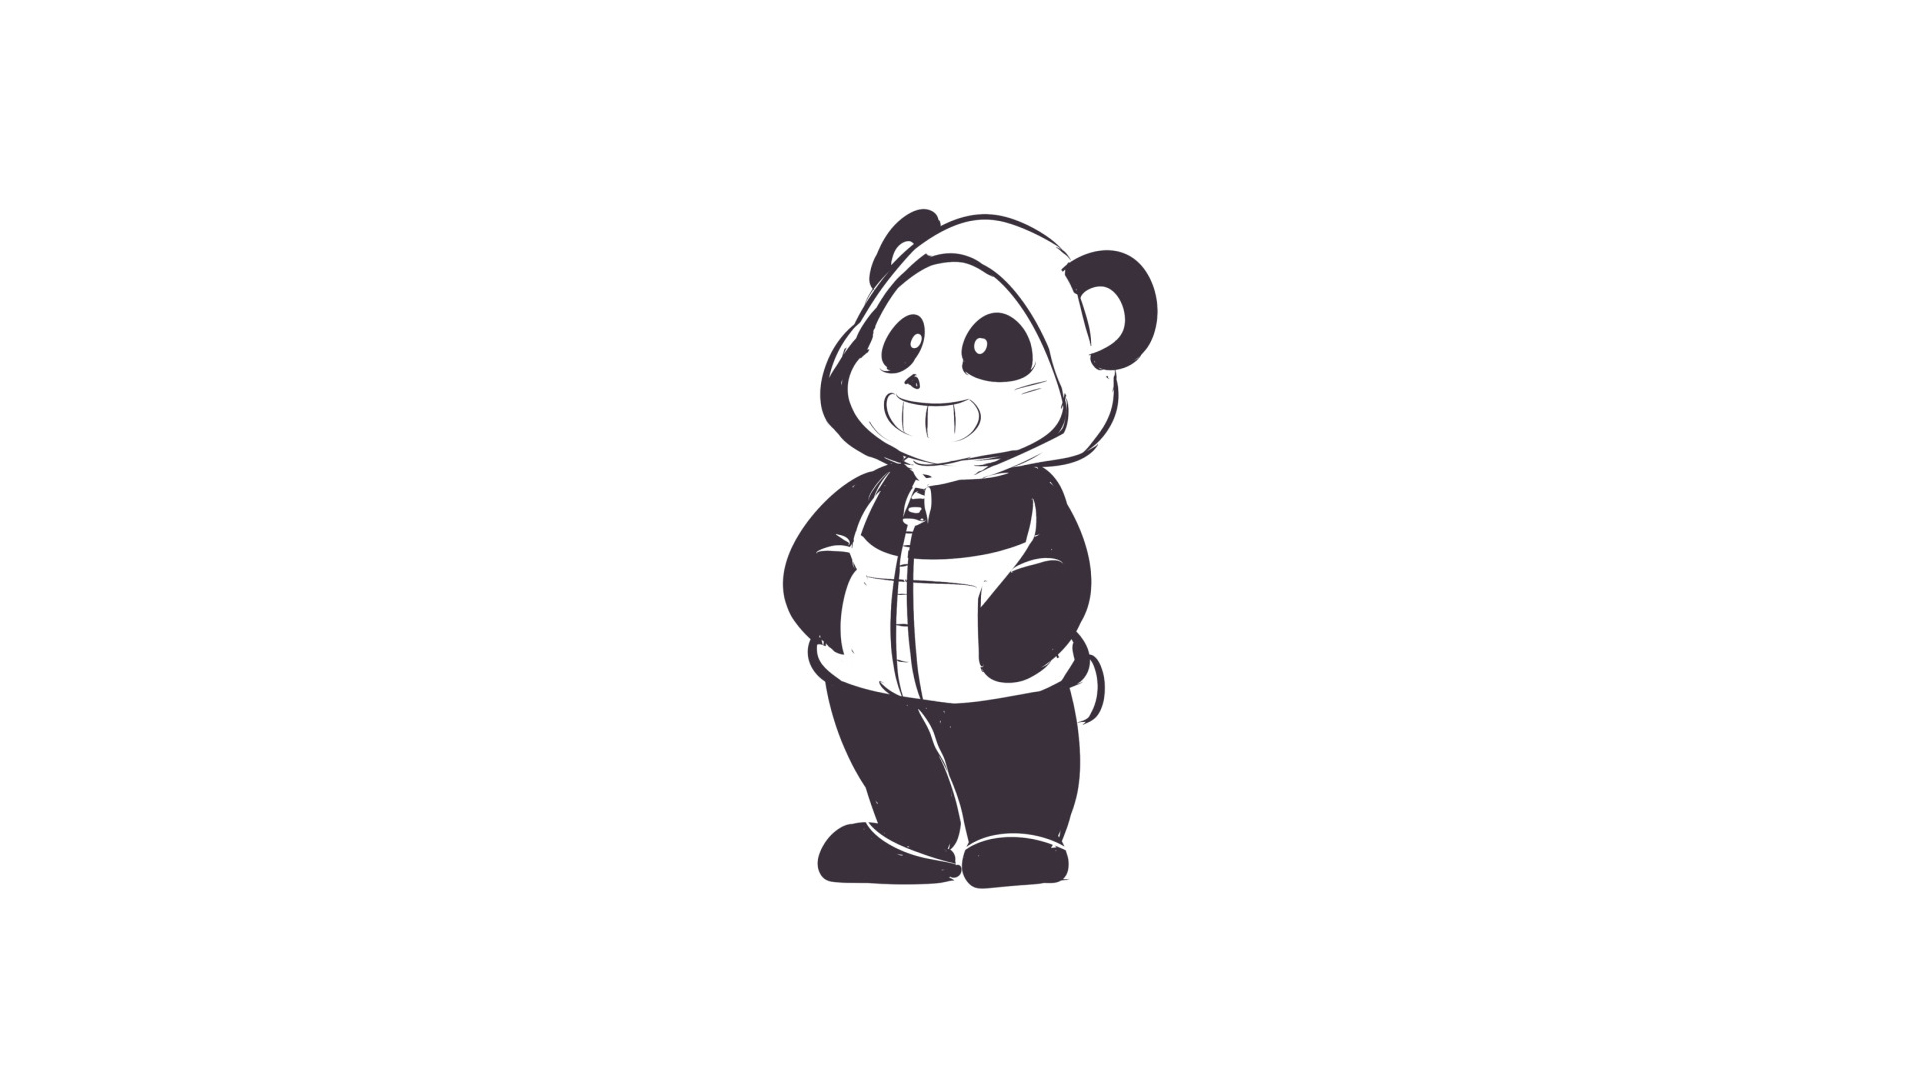 Undertale Panda Sans wallpaper happy panda wallpaper hoodie sketch 1920x1080